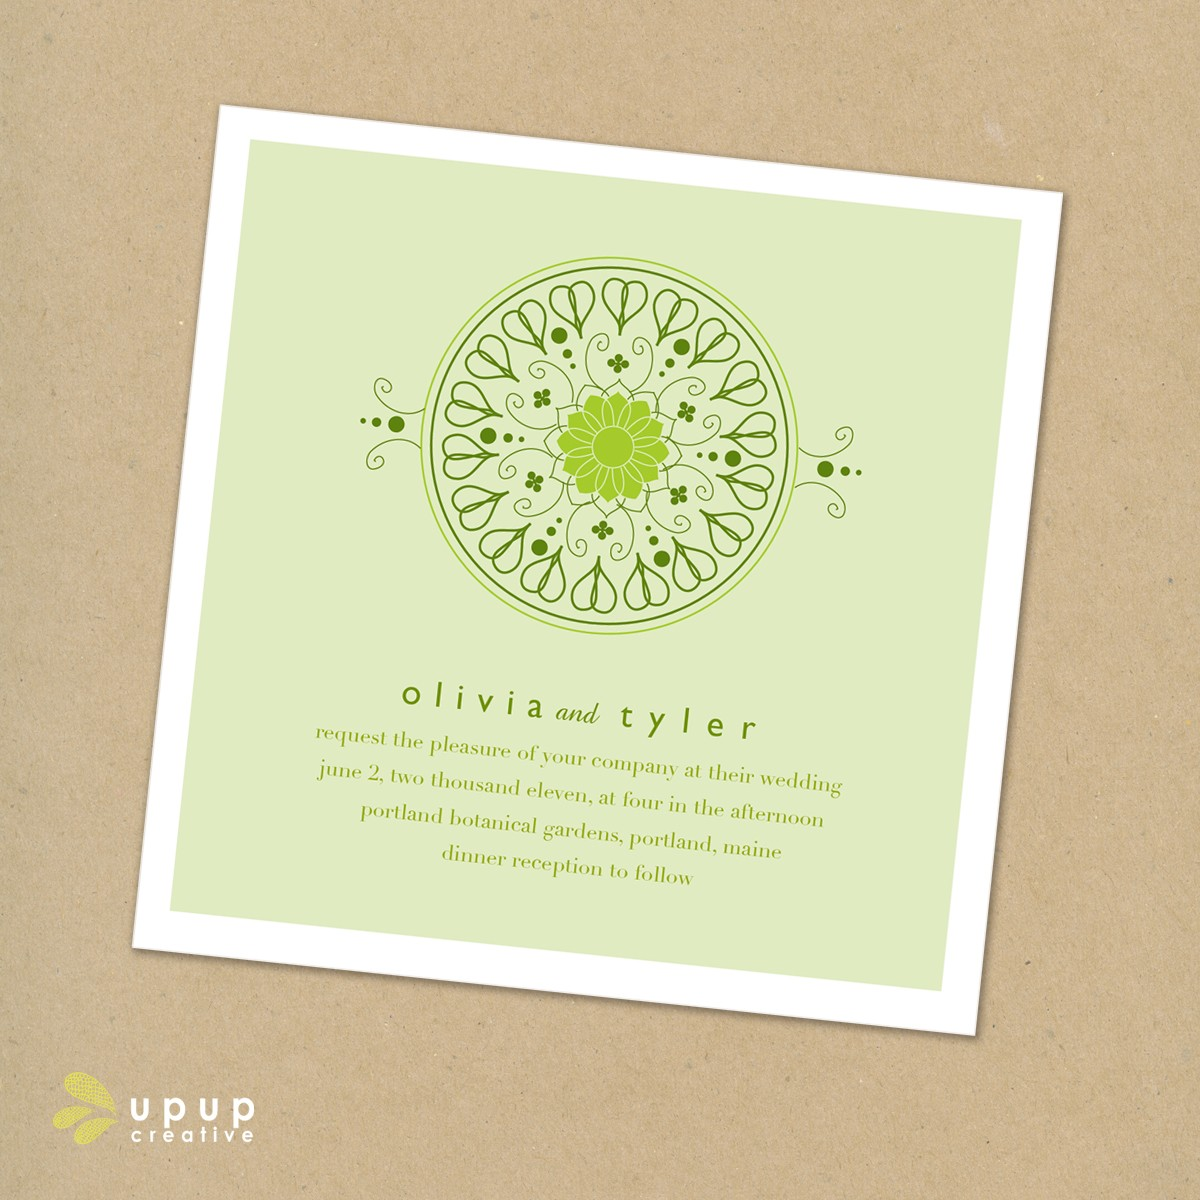 Eco Friendly Weding Invitations 012 - Eco Friendly Weding Invitations